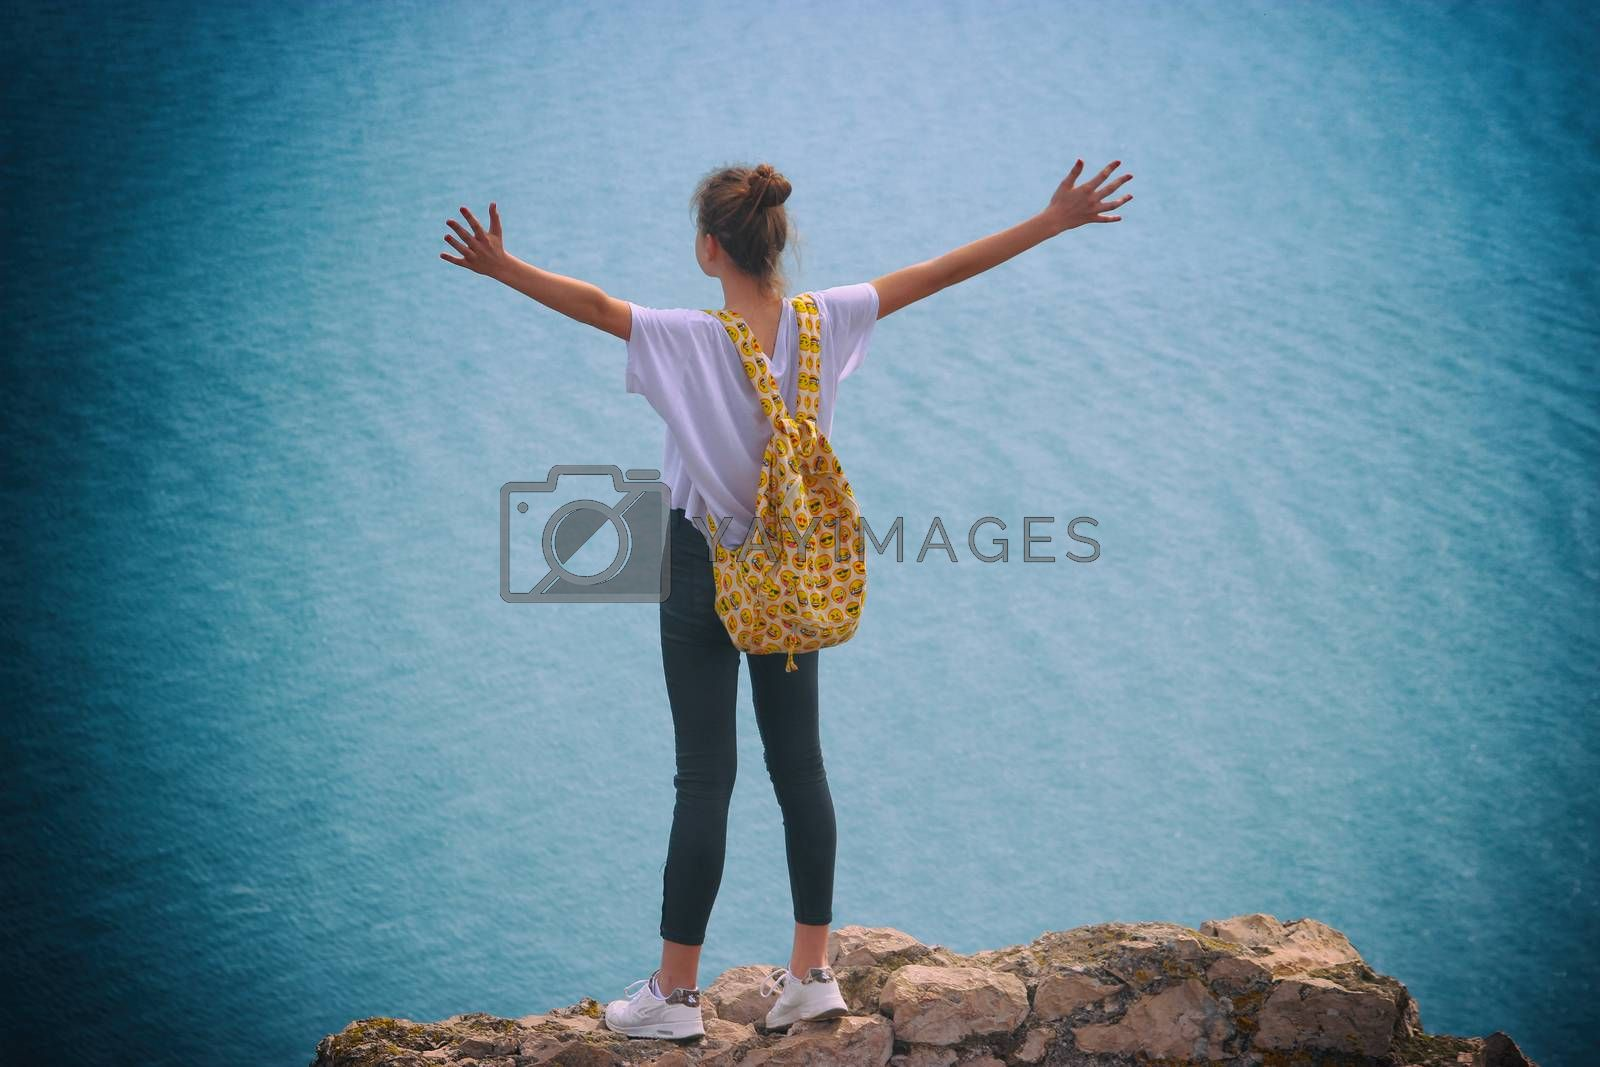 La Turbie, France - March 22, 2016: Freedom Concept. Free Happy Young Woman with a Backpack with Smileys Enjoying Nature. Mediterranean Sea in the Background